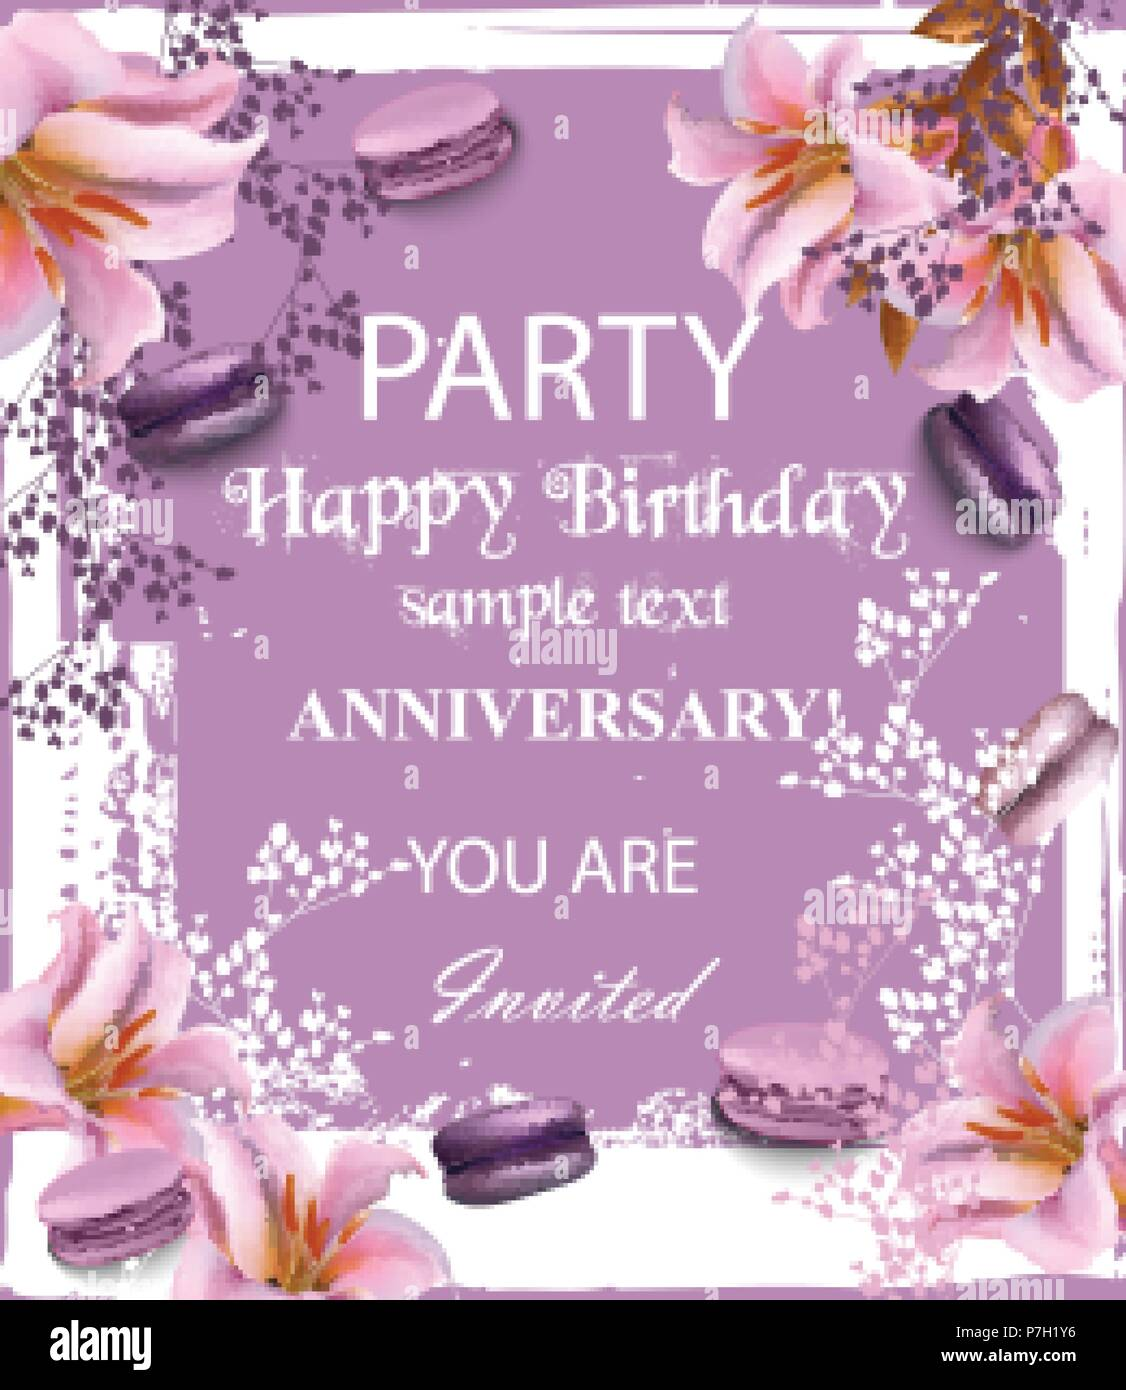 Birthday Party Invitation Vector Flowers And Macaroons Over Vintage Background Trendy Lilac Color